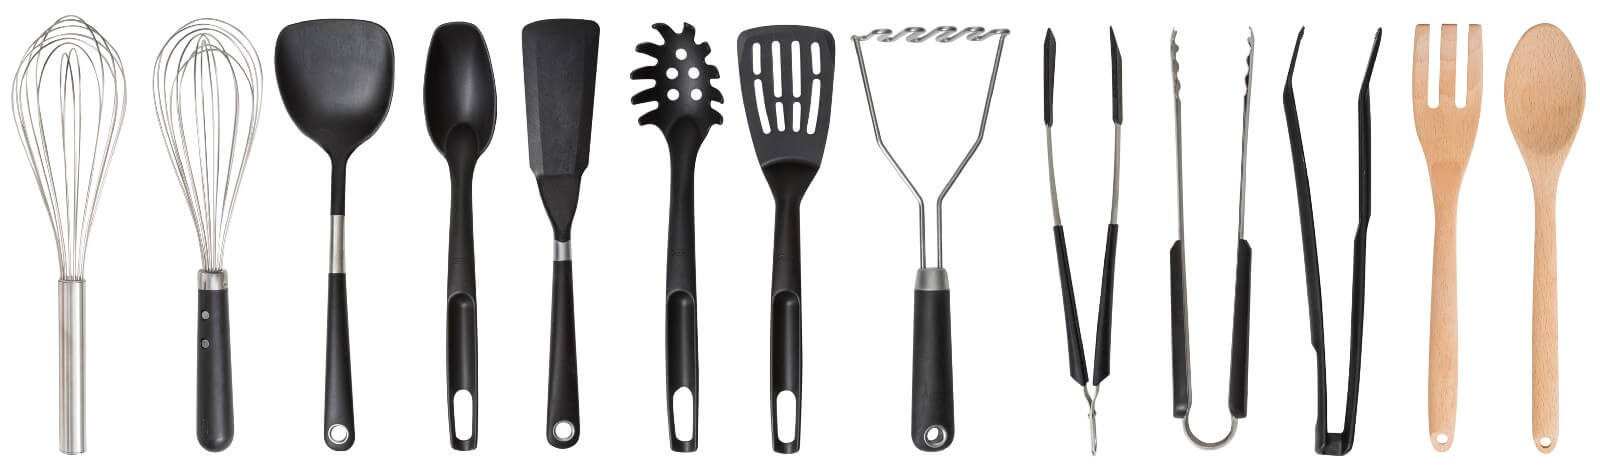 13 different types of kitchen utensils made of various materials